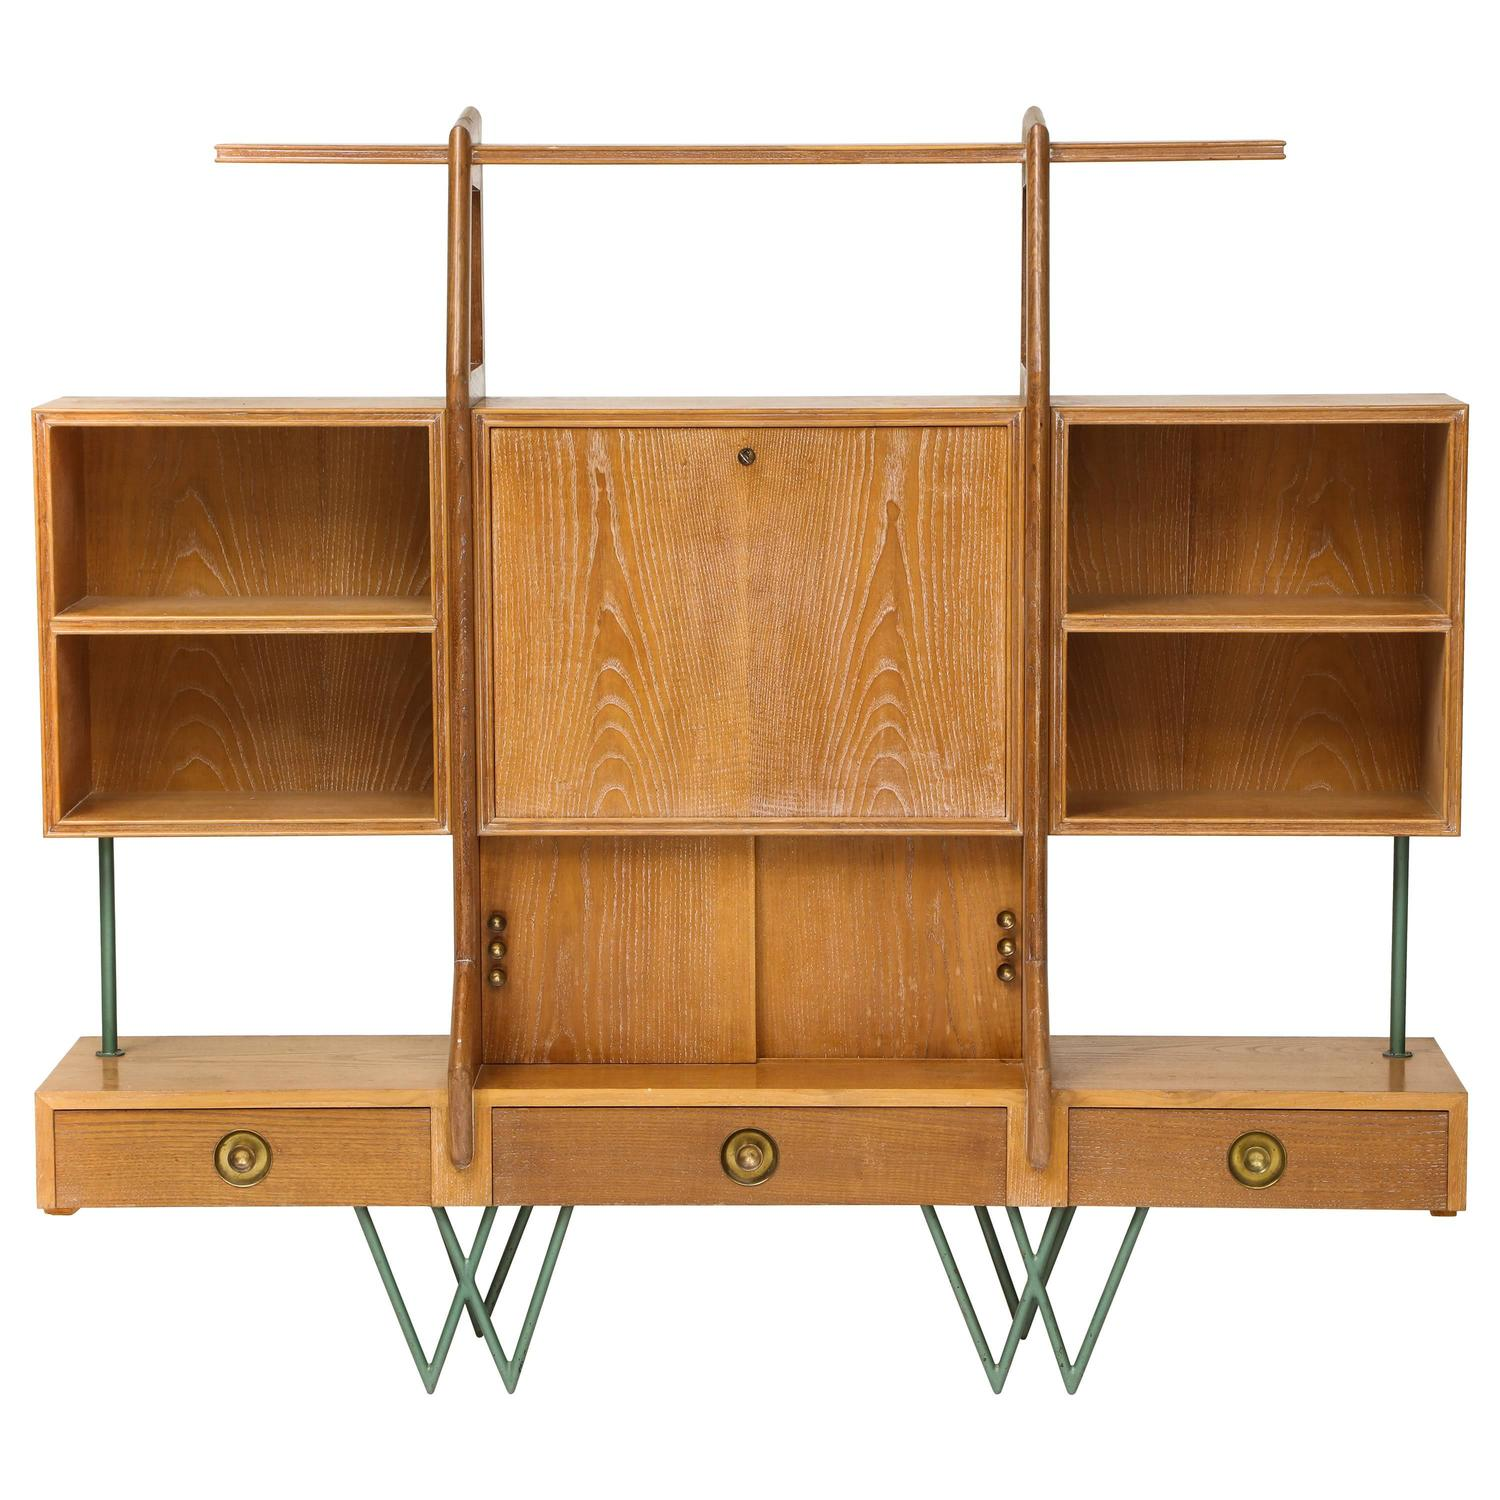 Very Impressive portraiture of Architectural Cerused Bookshelf Secretary Mid Century France with  with #6D3D18 color and 1500x1500 pixels